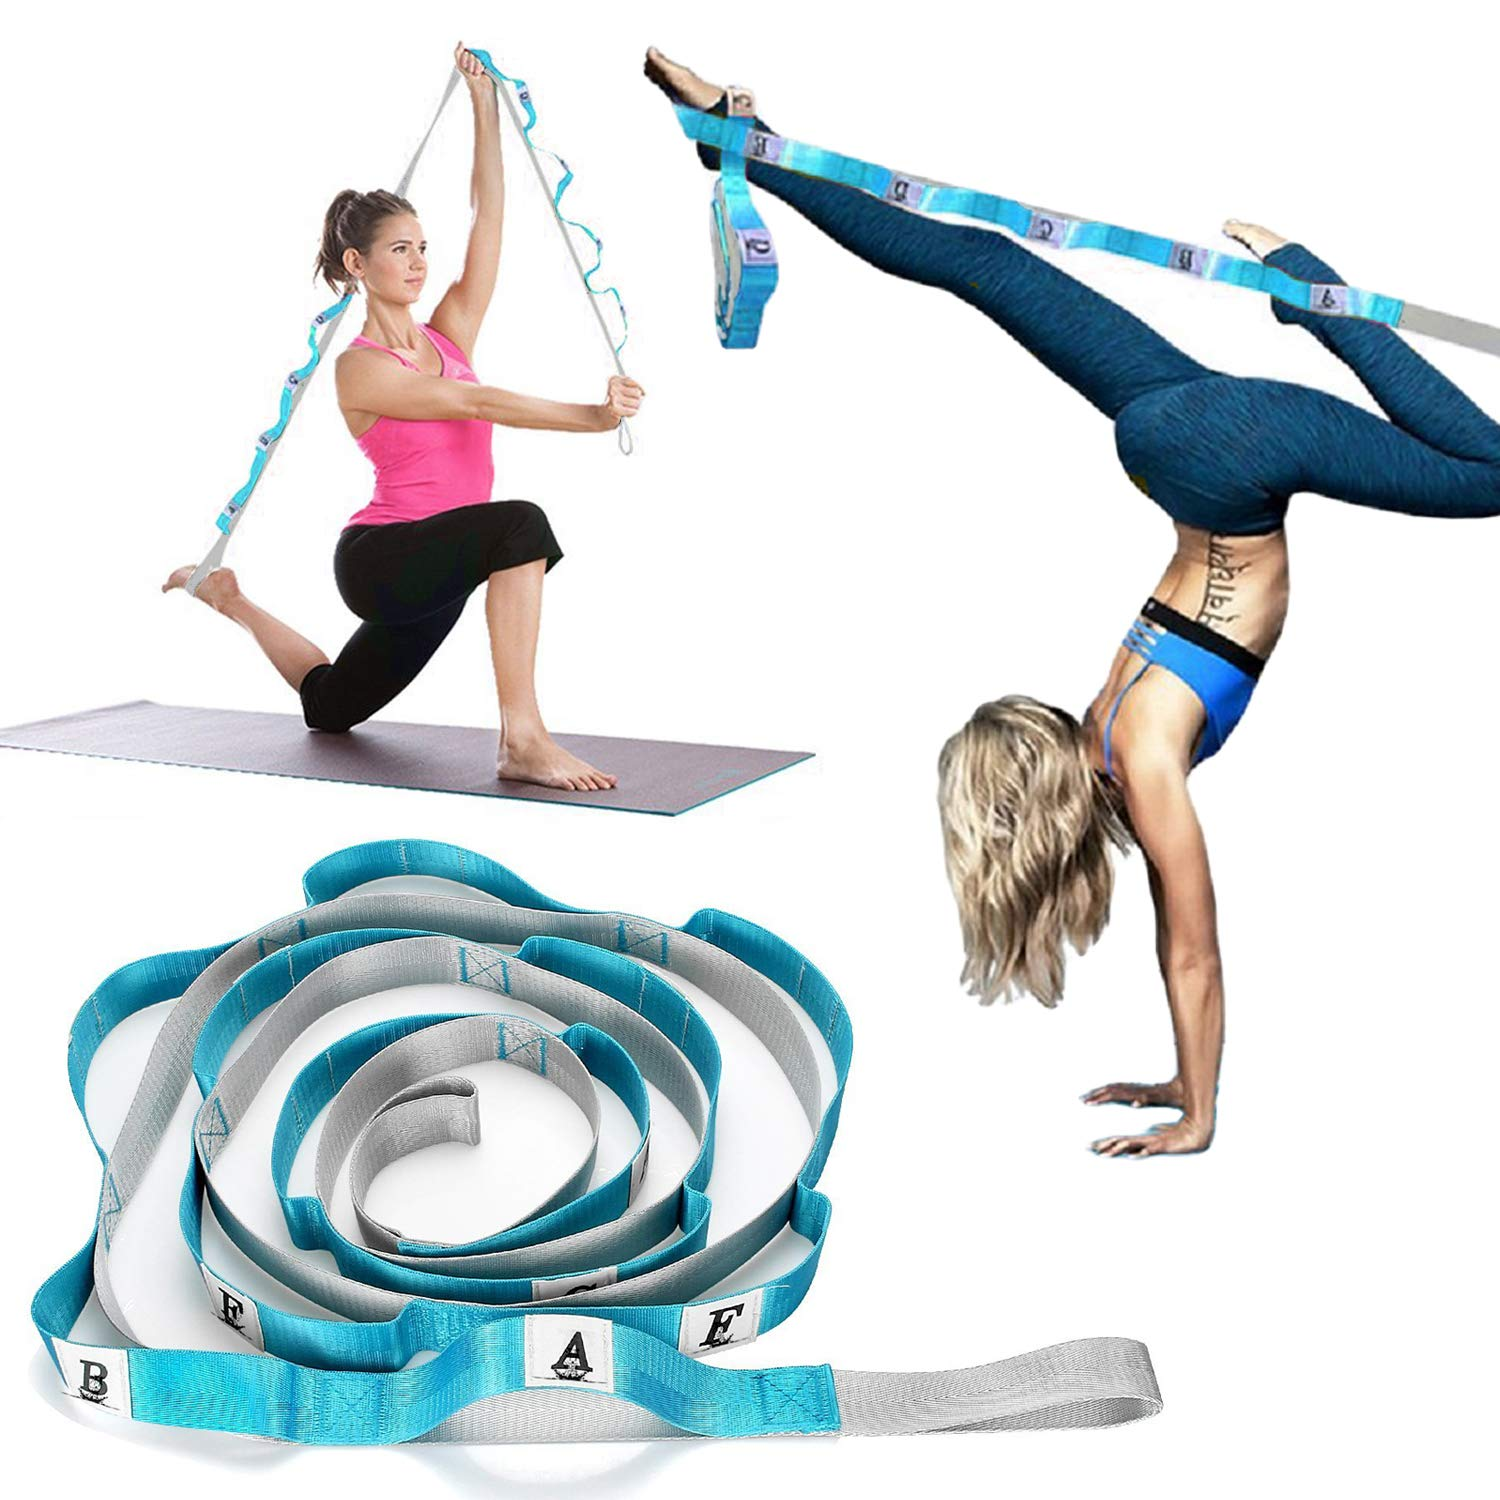 Stretching Strap Fitness Yoga, Double Stitched 10-Loops Exercise Band, Leg Stretcher Training Equipment Physical Therapy Belt for Rehab Dance Gymnastics Pilates Stretches Taekwondo MMA Ballet (Blue)